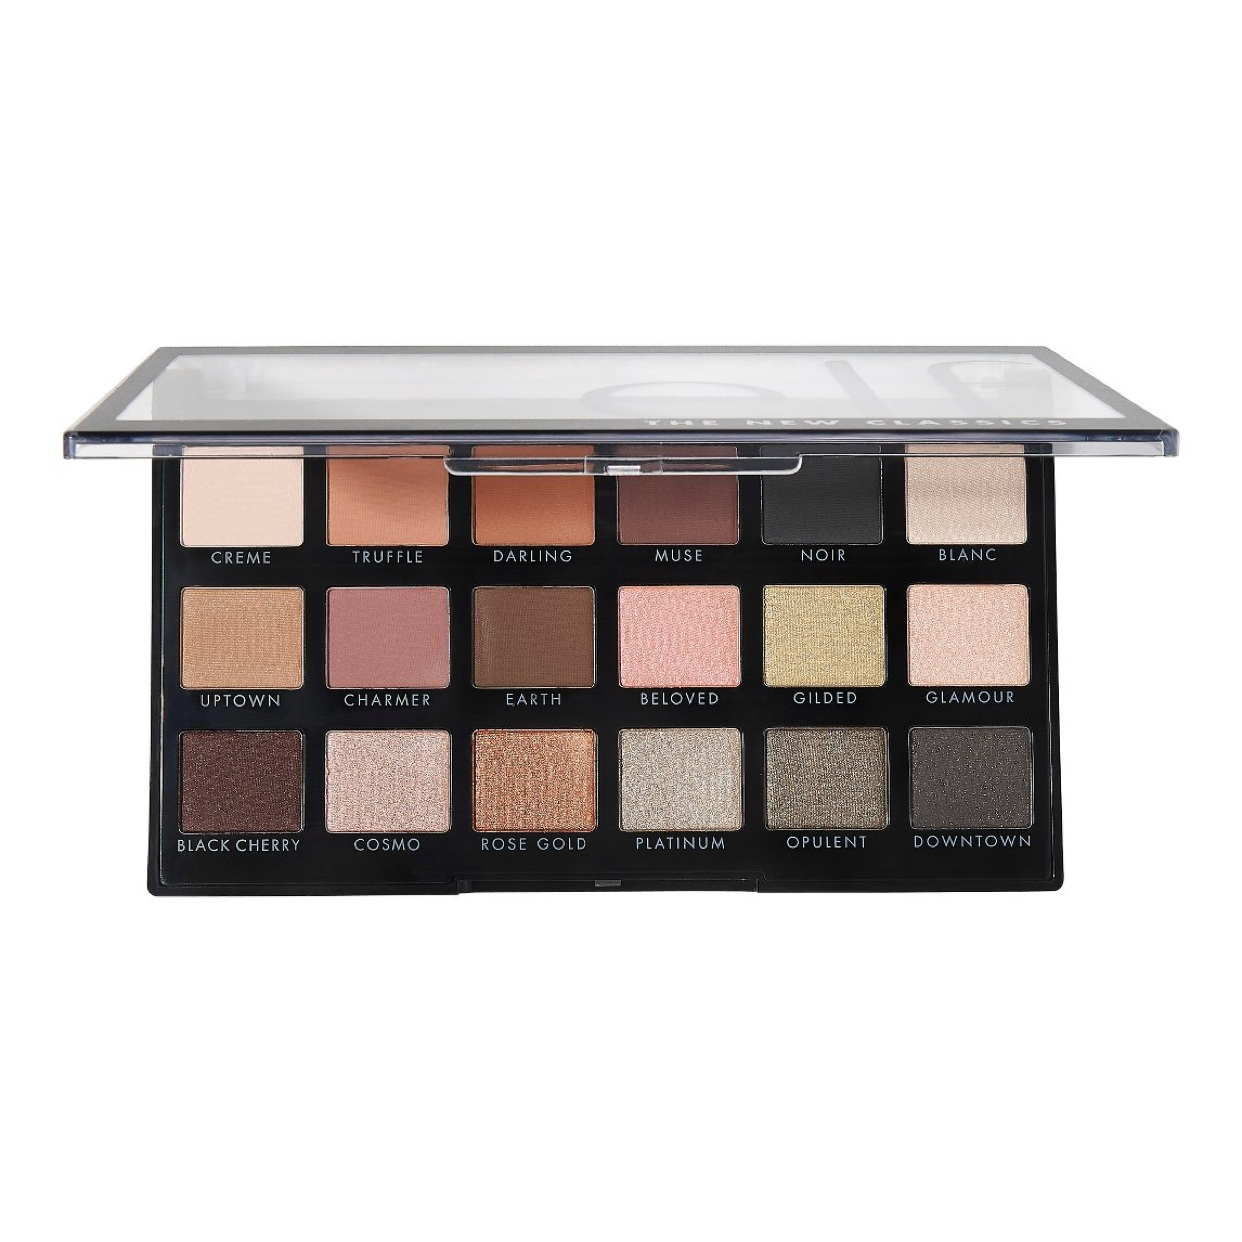 - I can't say enough good things about this eye shadow palette. Love the colors and love the price!Find it here.